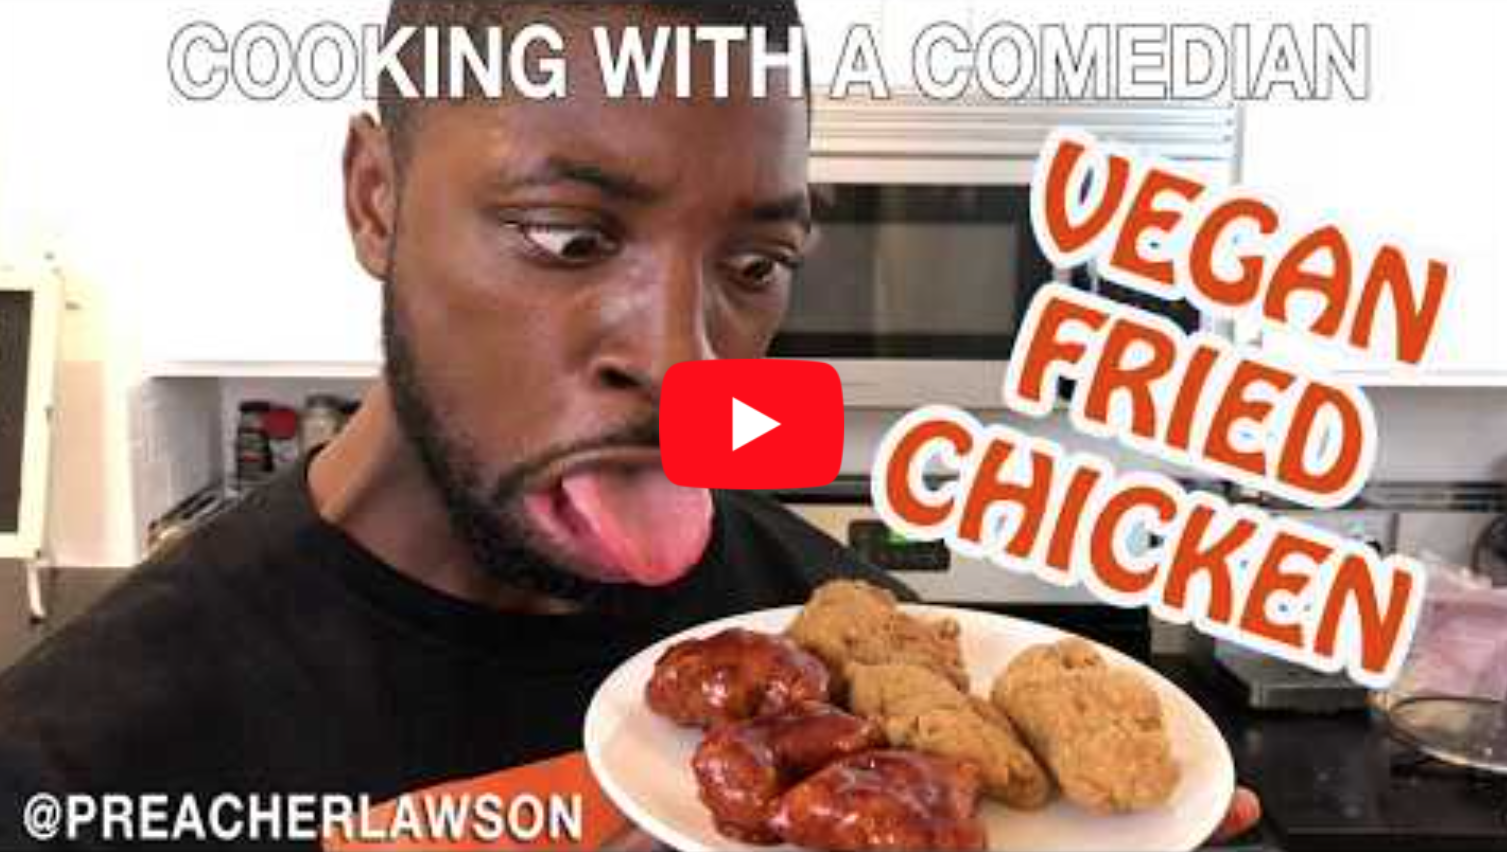 How To Make Vegan Fried Chicken - Cooking With A Comedian @PreacherLawson   VeganFlix